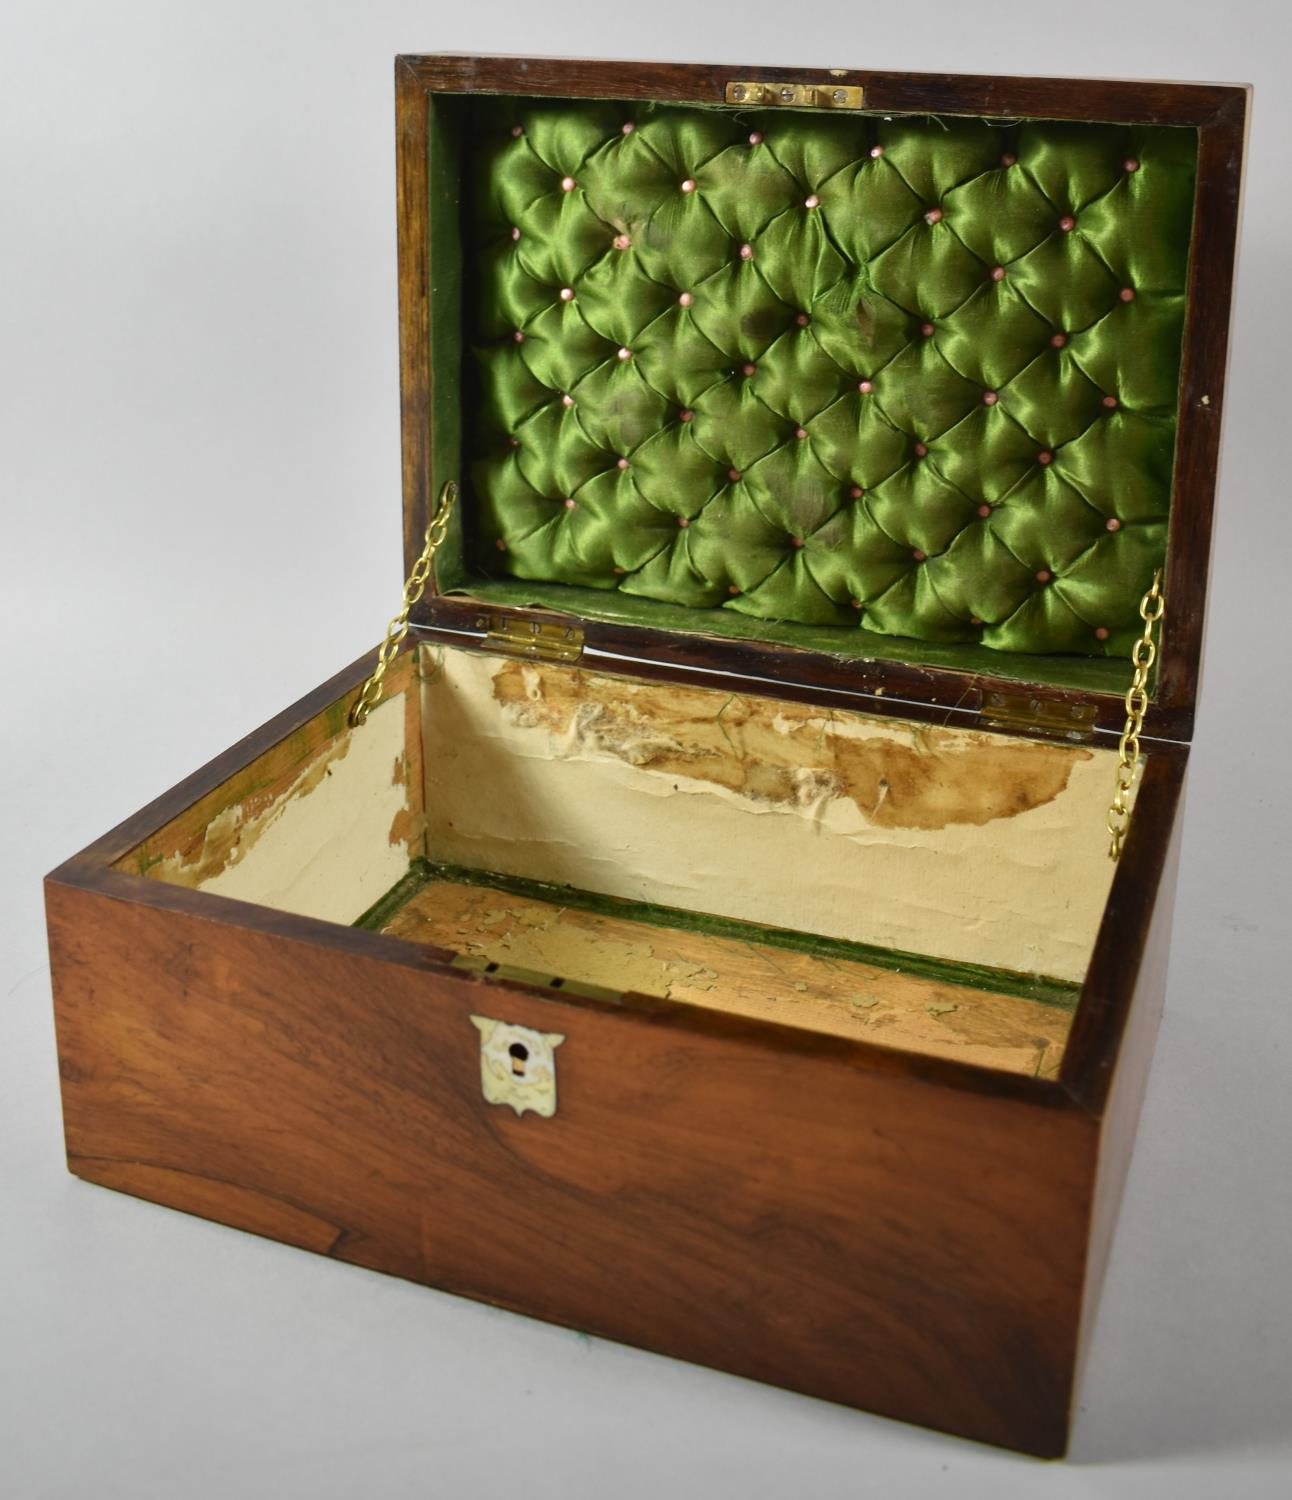 A Late 19th Century Rosewood Ladies Workbox with Mother of Pearl Escutcheons, Missing Inner Tray, - Image 2 of 2